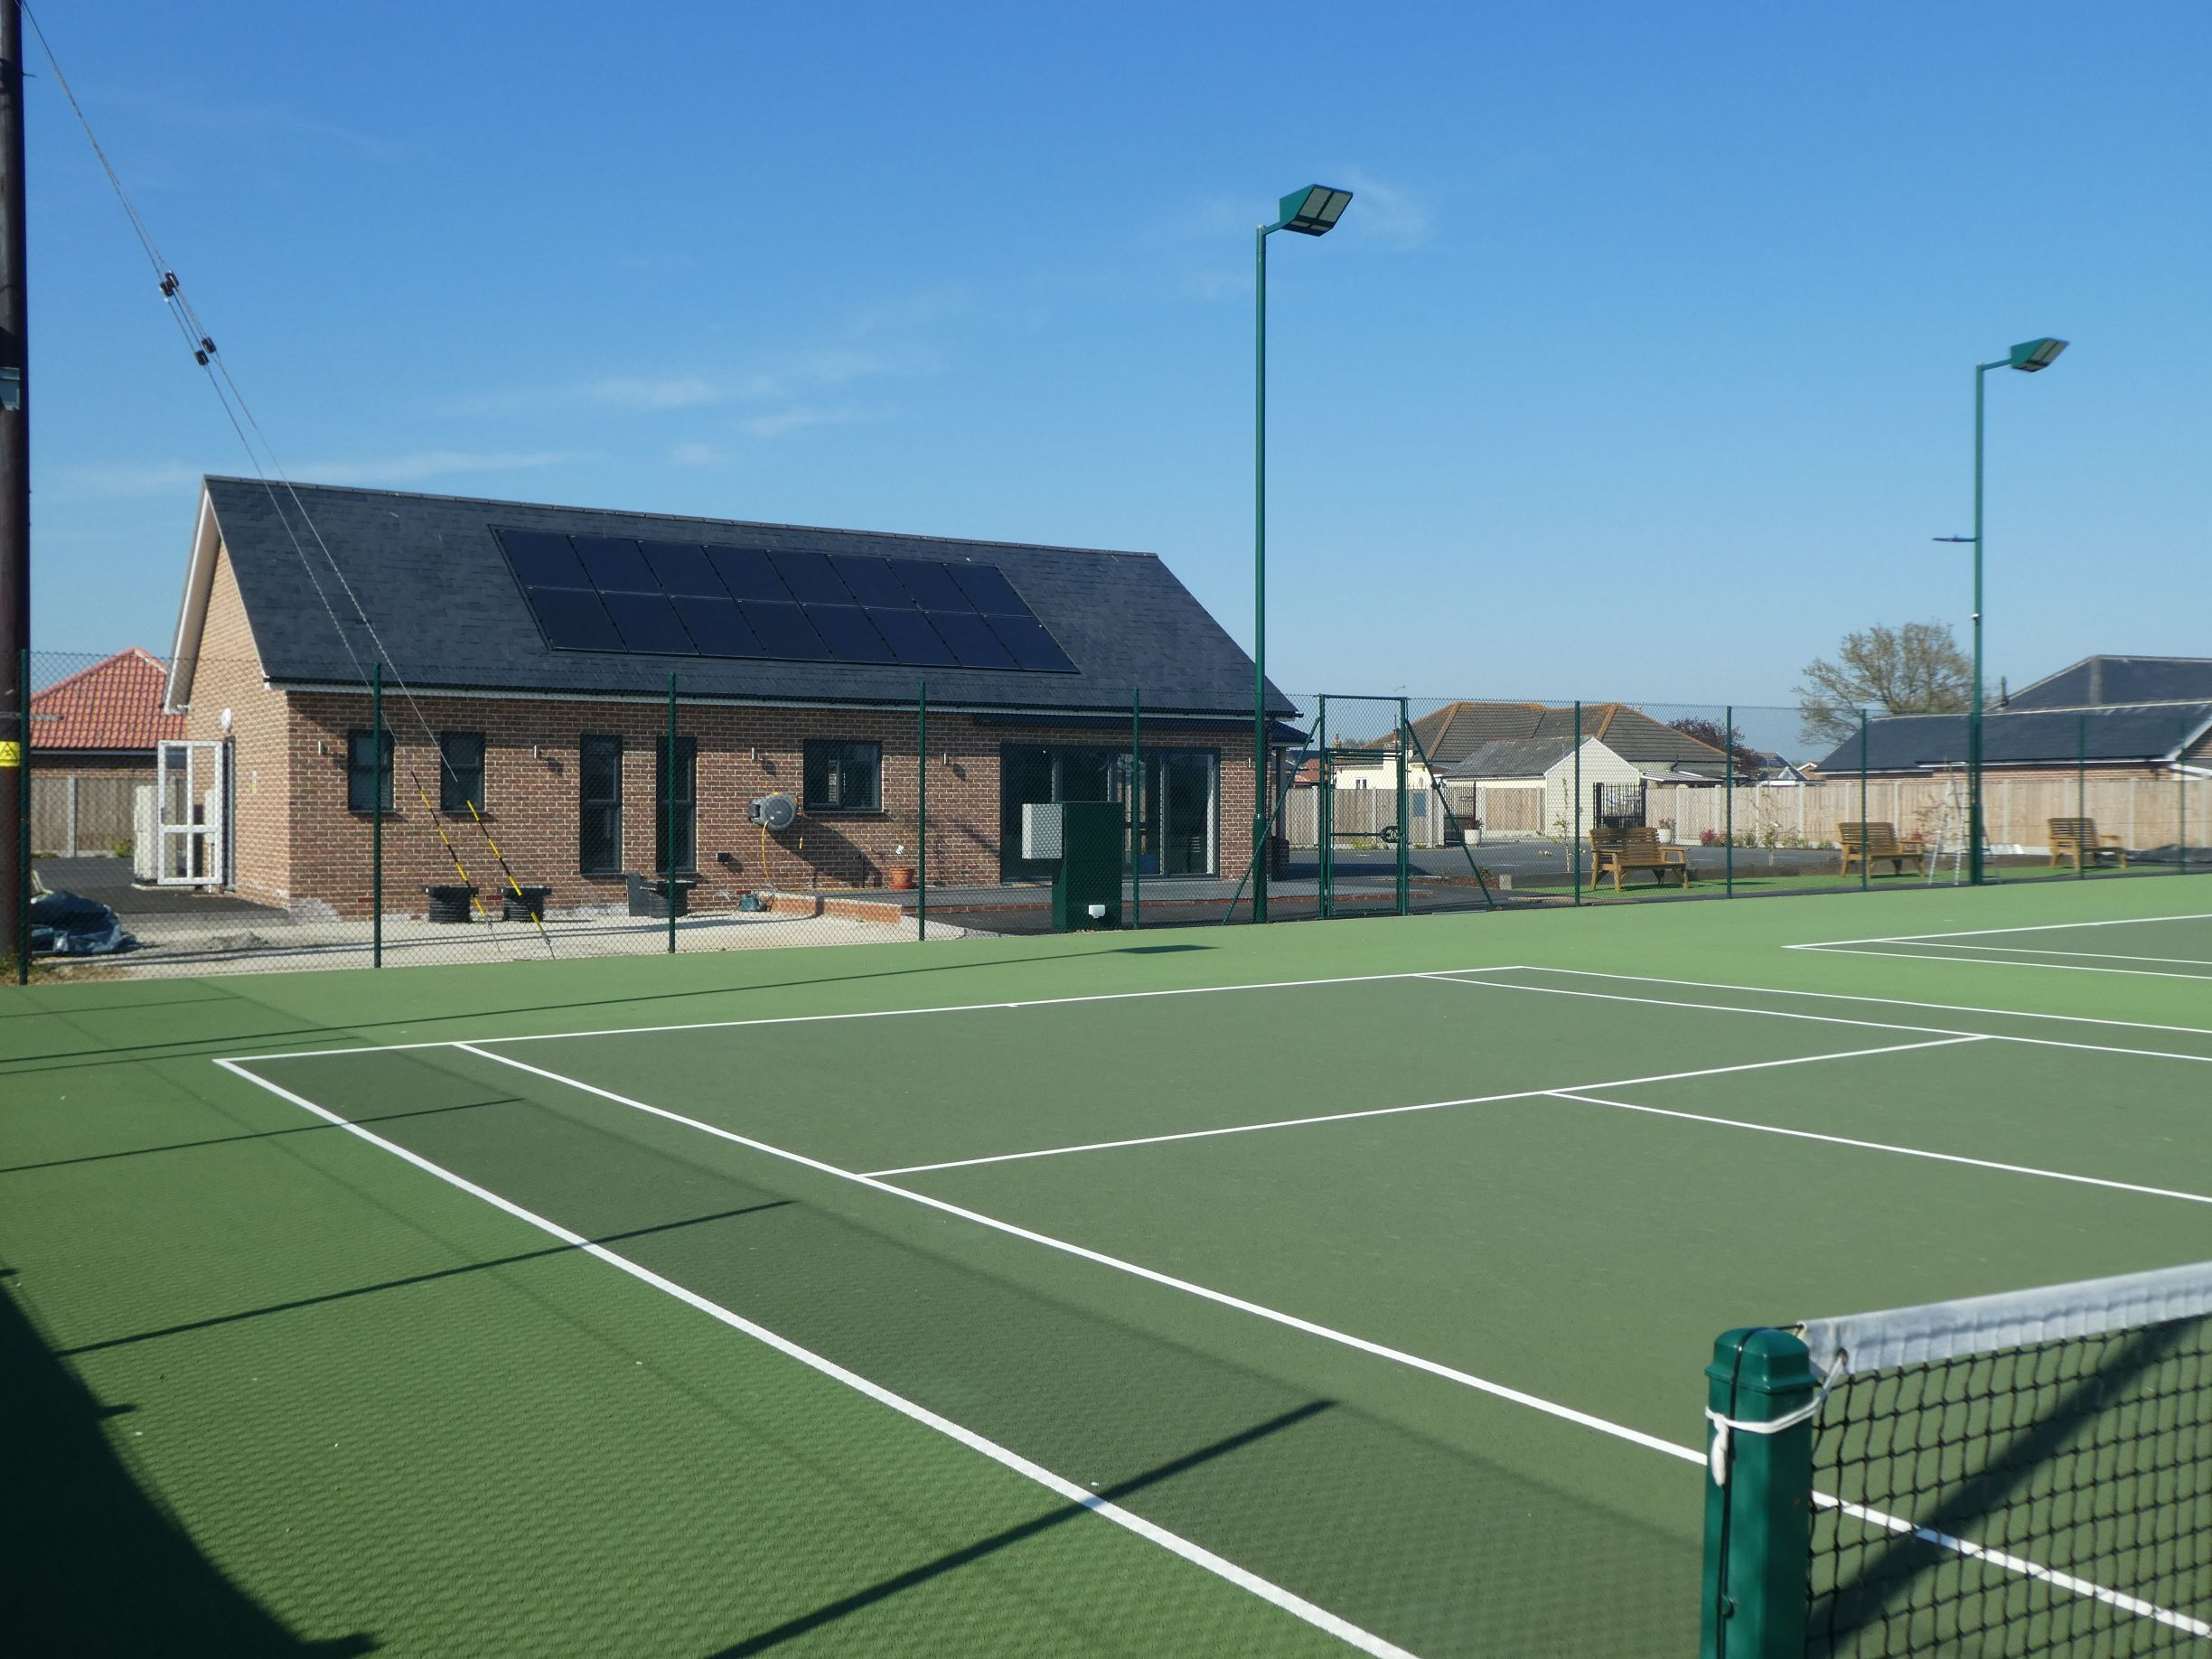 We designed and installed these industry leading asphalt tennis court surfaces as part of a major upgrade for an Essex tennis club